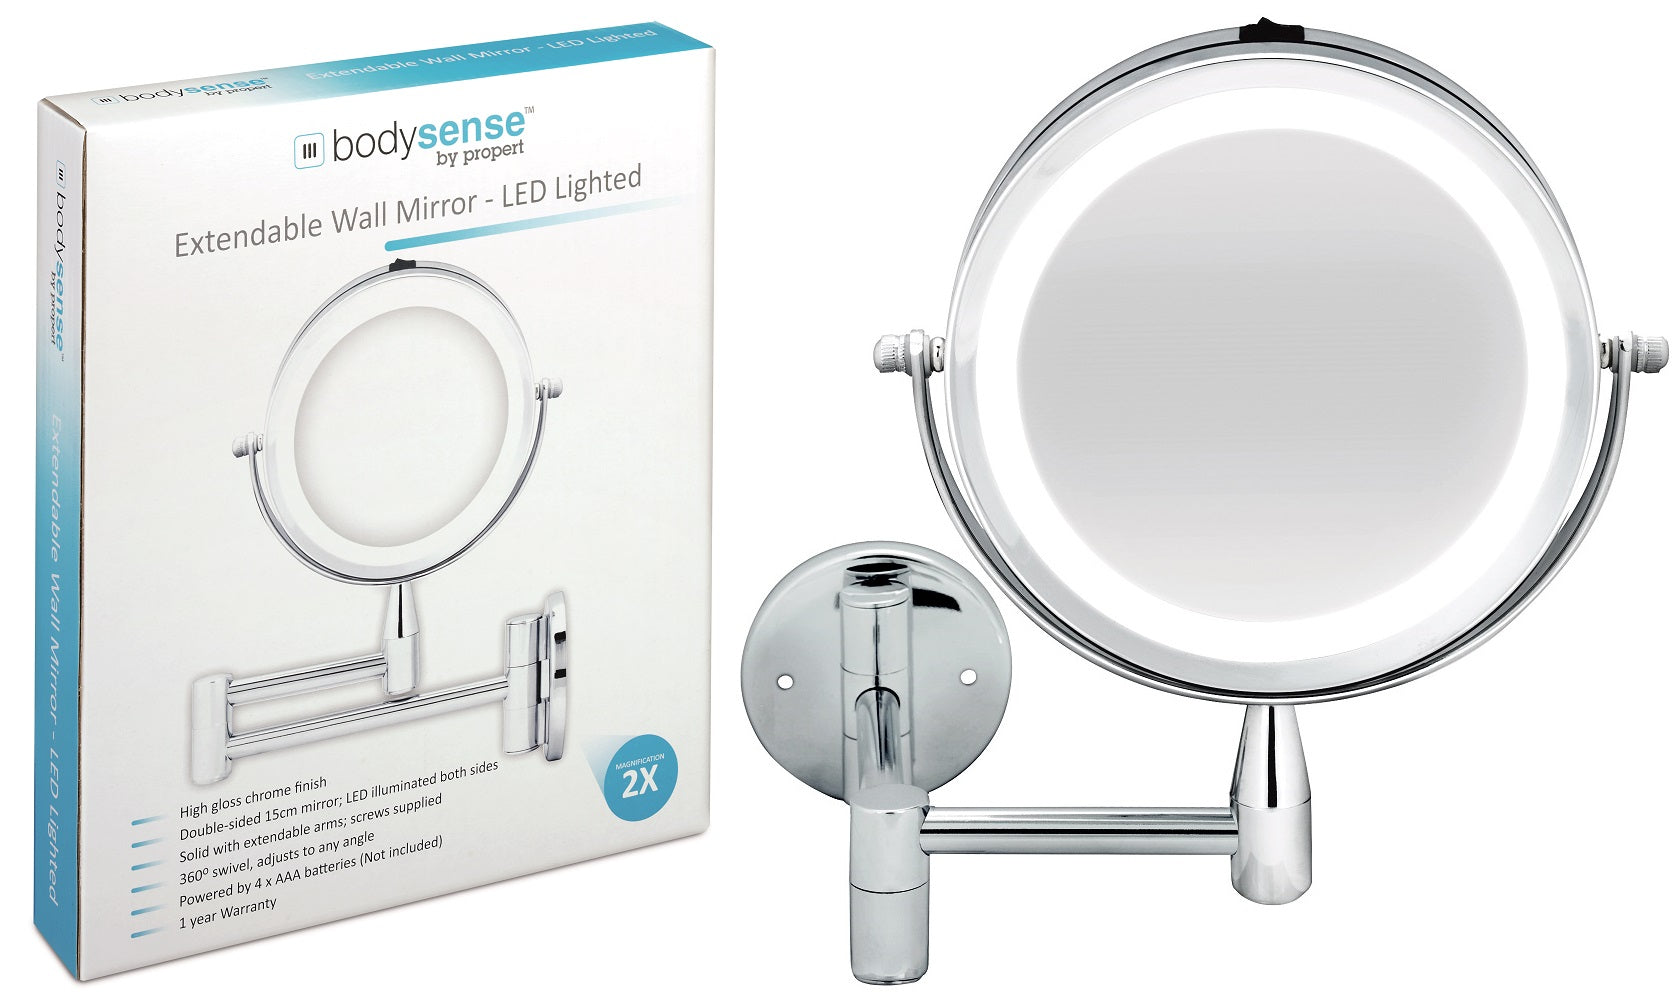 BODYSENSE EXTENDABLE WALL MIRROR LED - 2X MAGNIFICATION